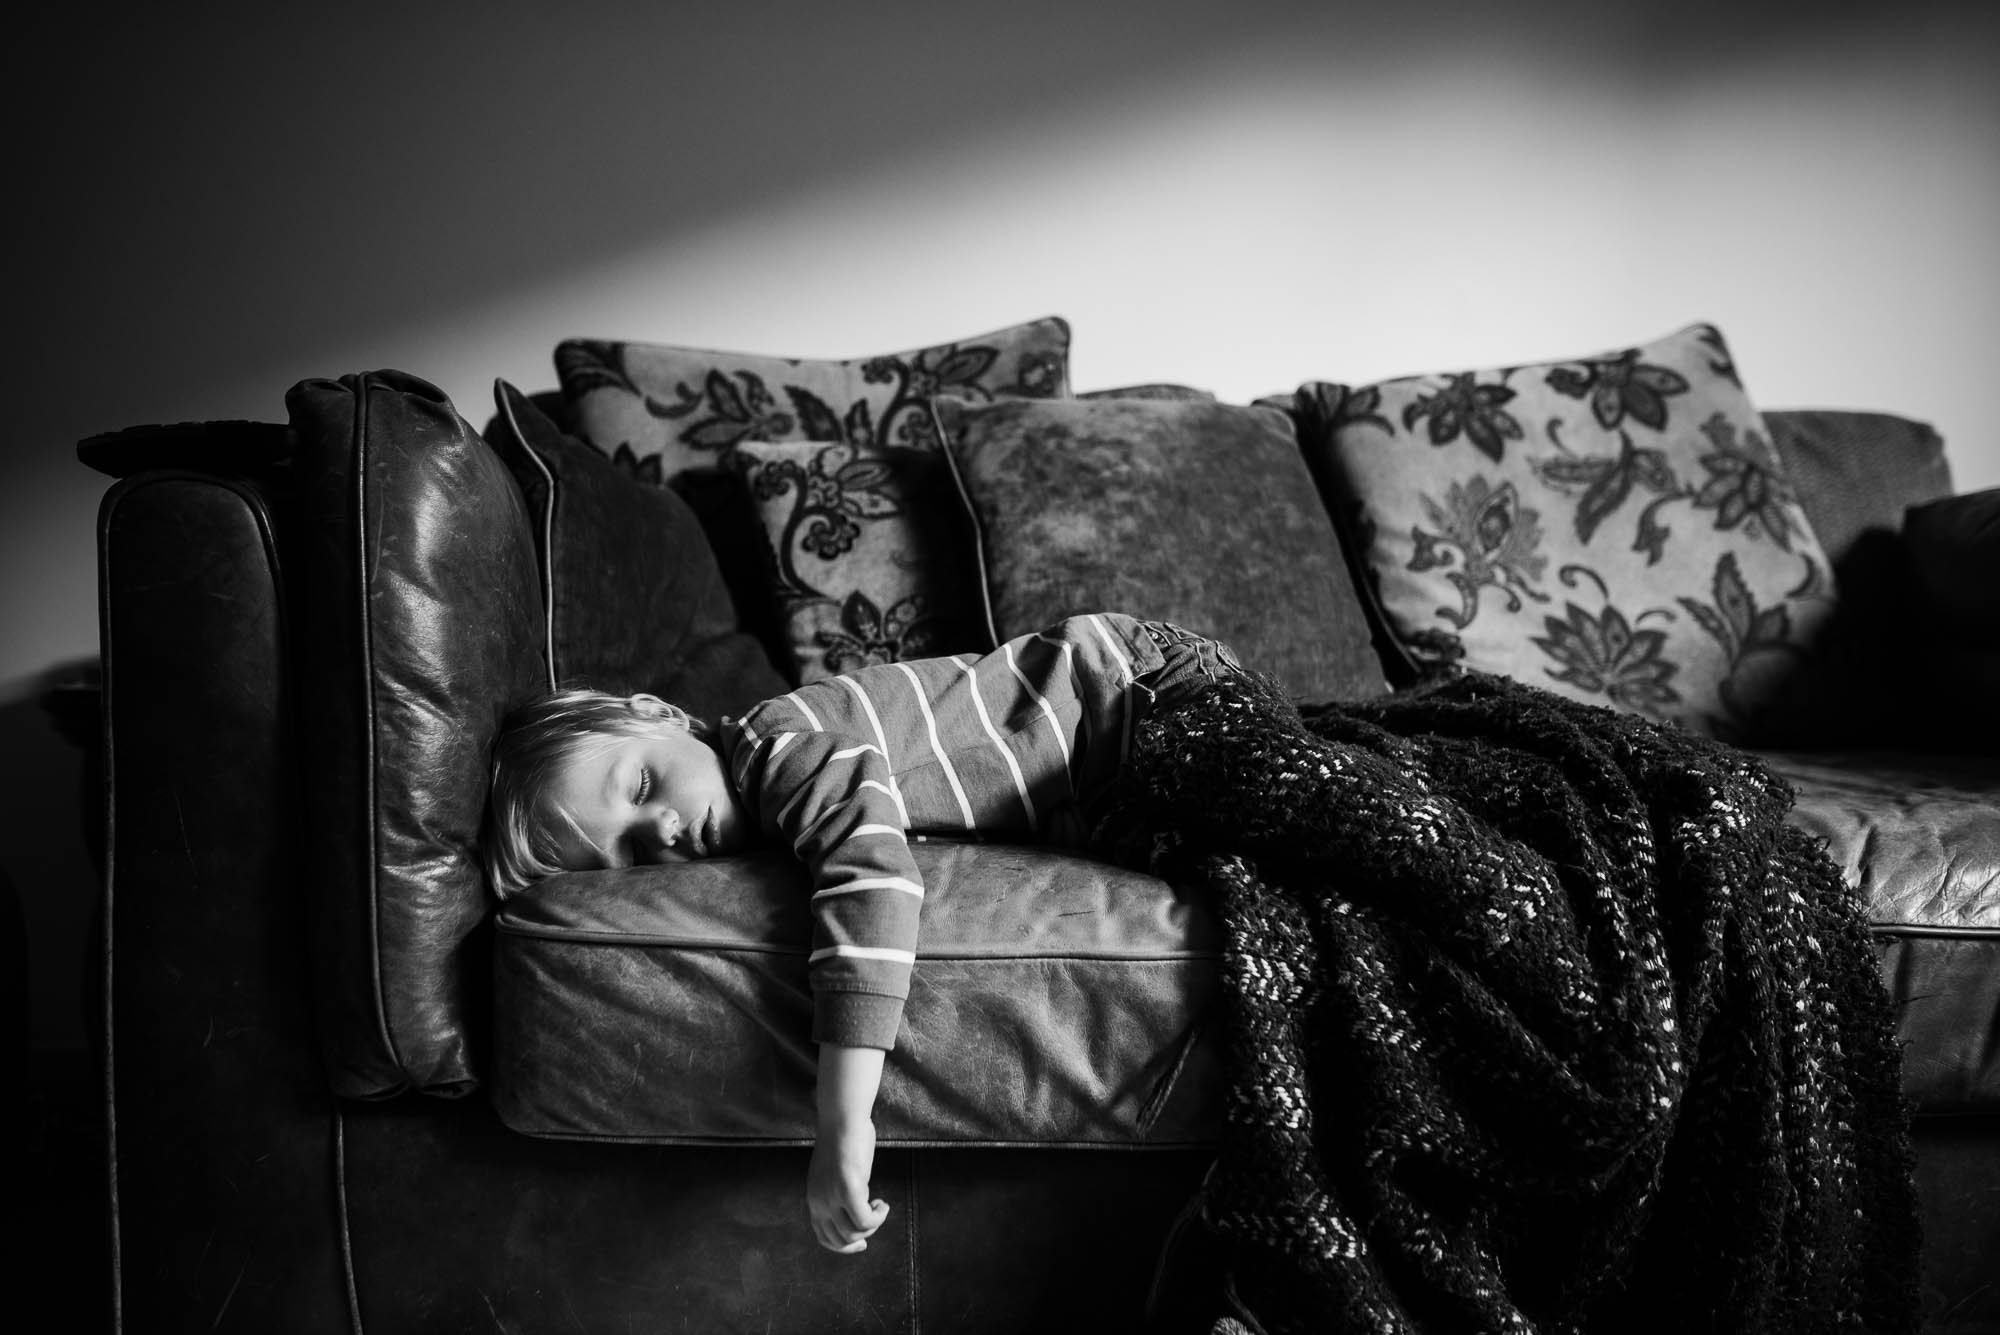 melbourne_family_photographer_boy_sleeping_on_sofa-1.jpg